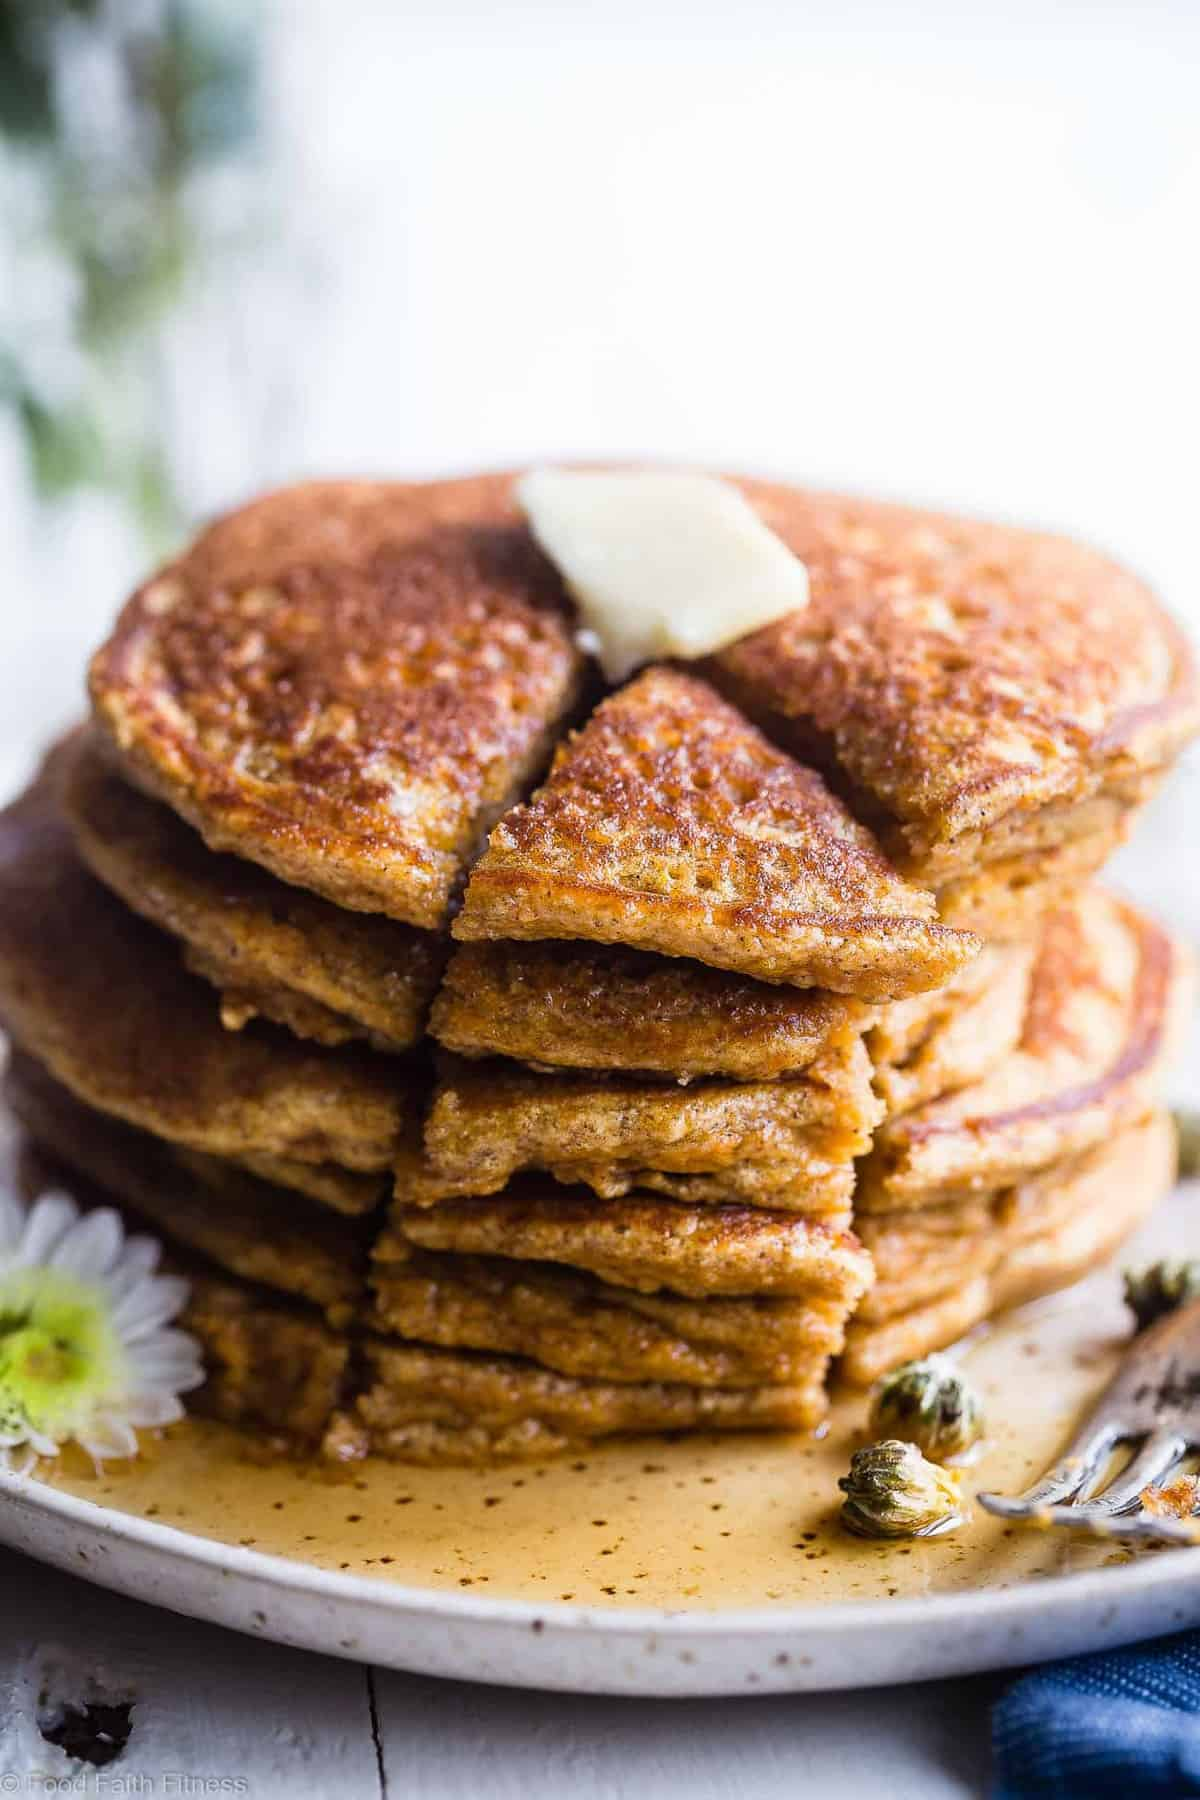 Gluten Free Paleo Sweet Potato Pancakes - SO fluffy and tender that you won't believe they're made without butter or oil! Perfect for a healthy breakfast and freezes great for busy mornings! | #Foodfaithfitness | #Glutenfree #Paleo #Healthy #Dairyfree #Pancakes